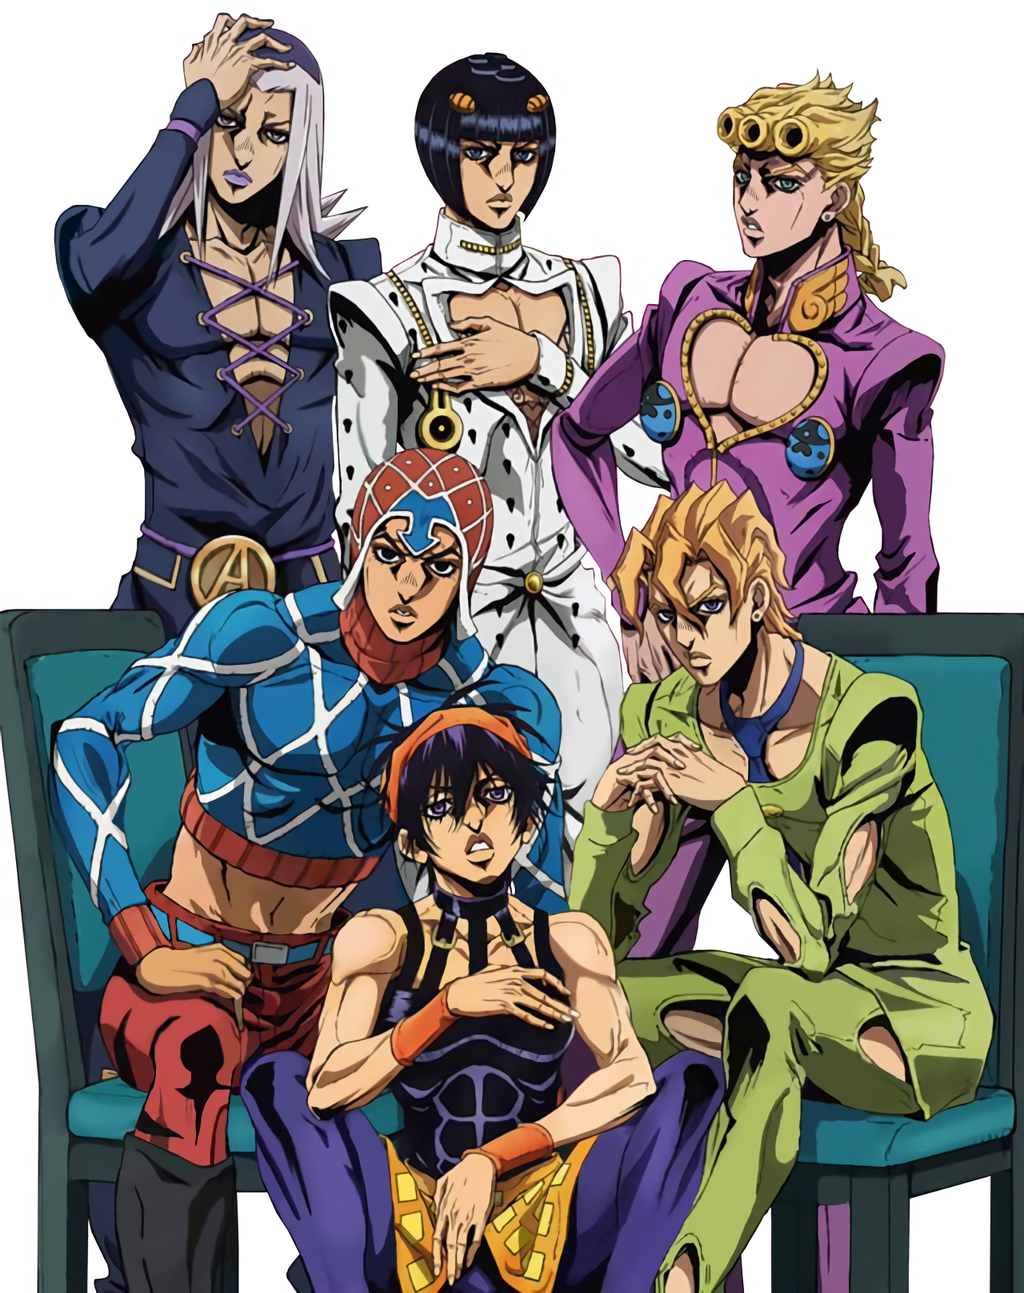 Golden Wind Anime Art Animedia Cover Jojo Anime Jojo S Bizarre Adventure Anime Jojo Bizzare Adventure